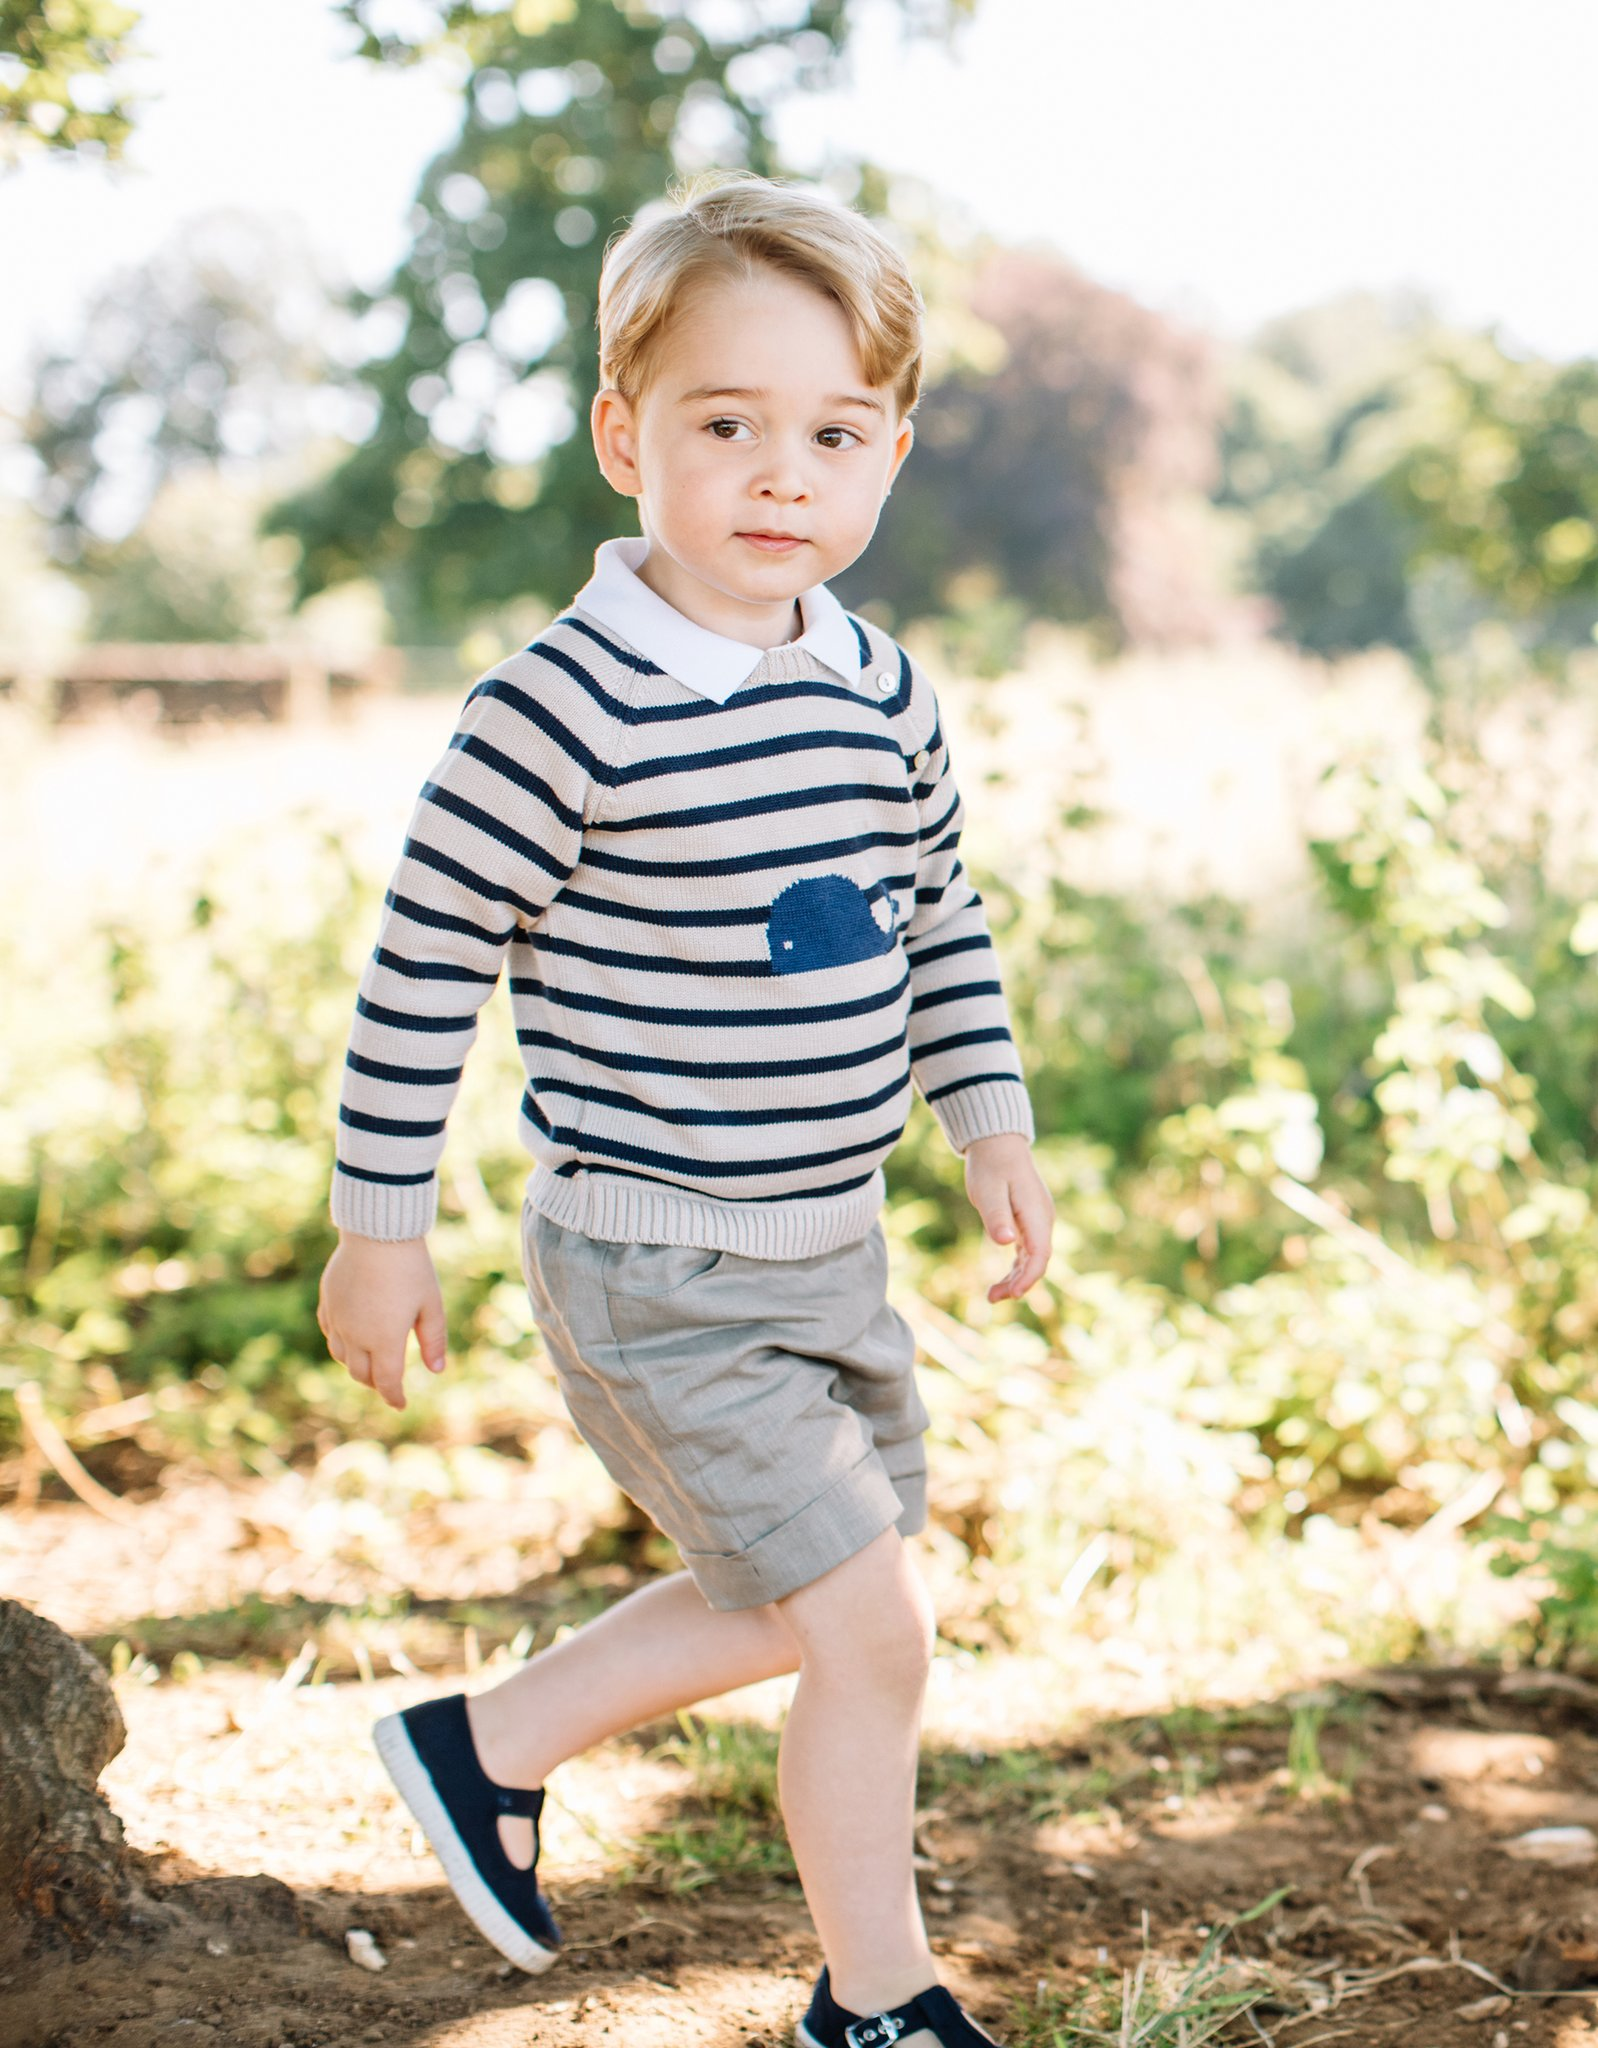 Happy third birthday, Prince George!